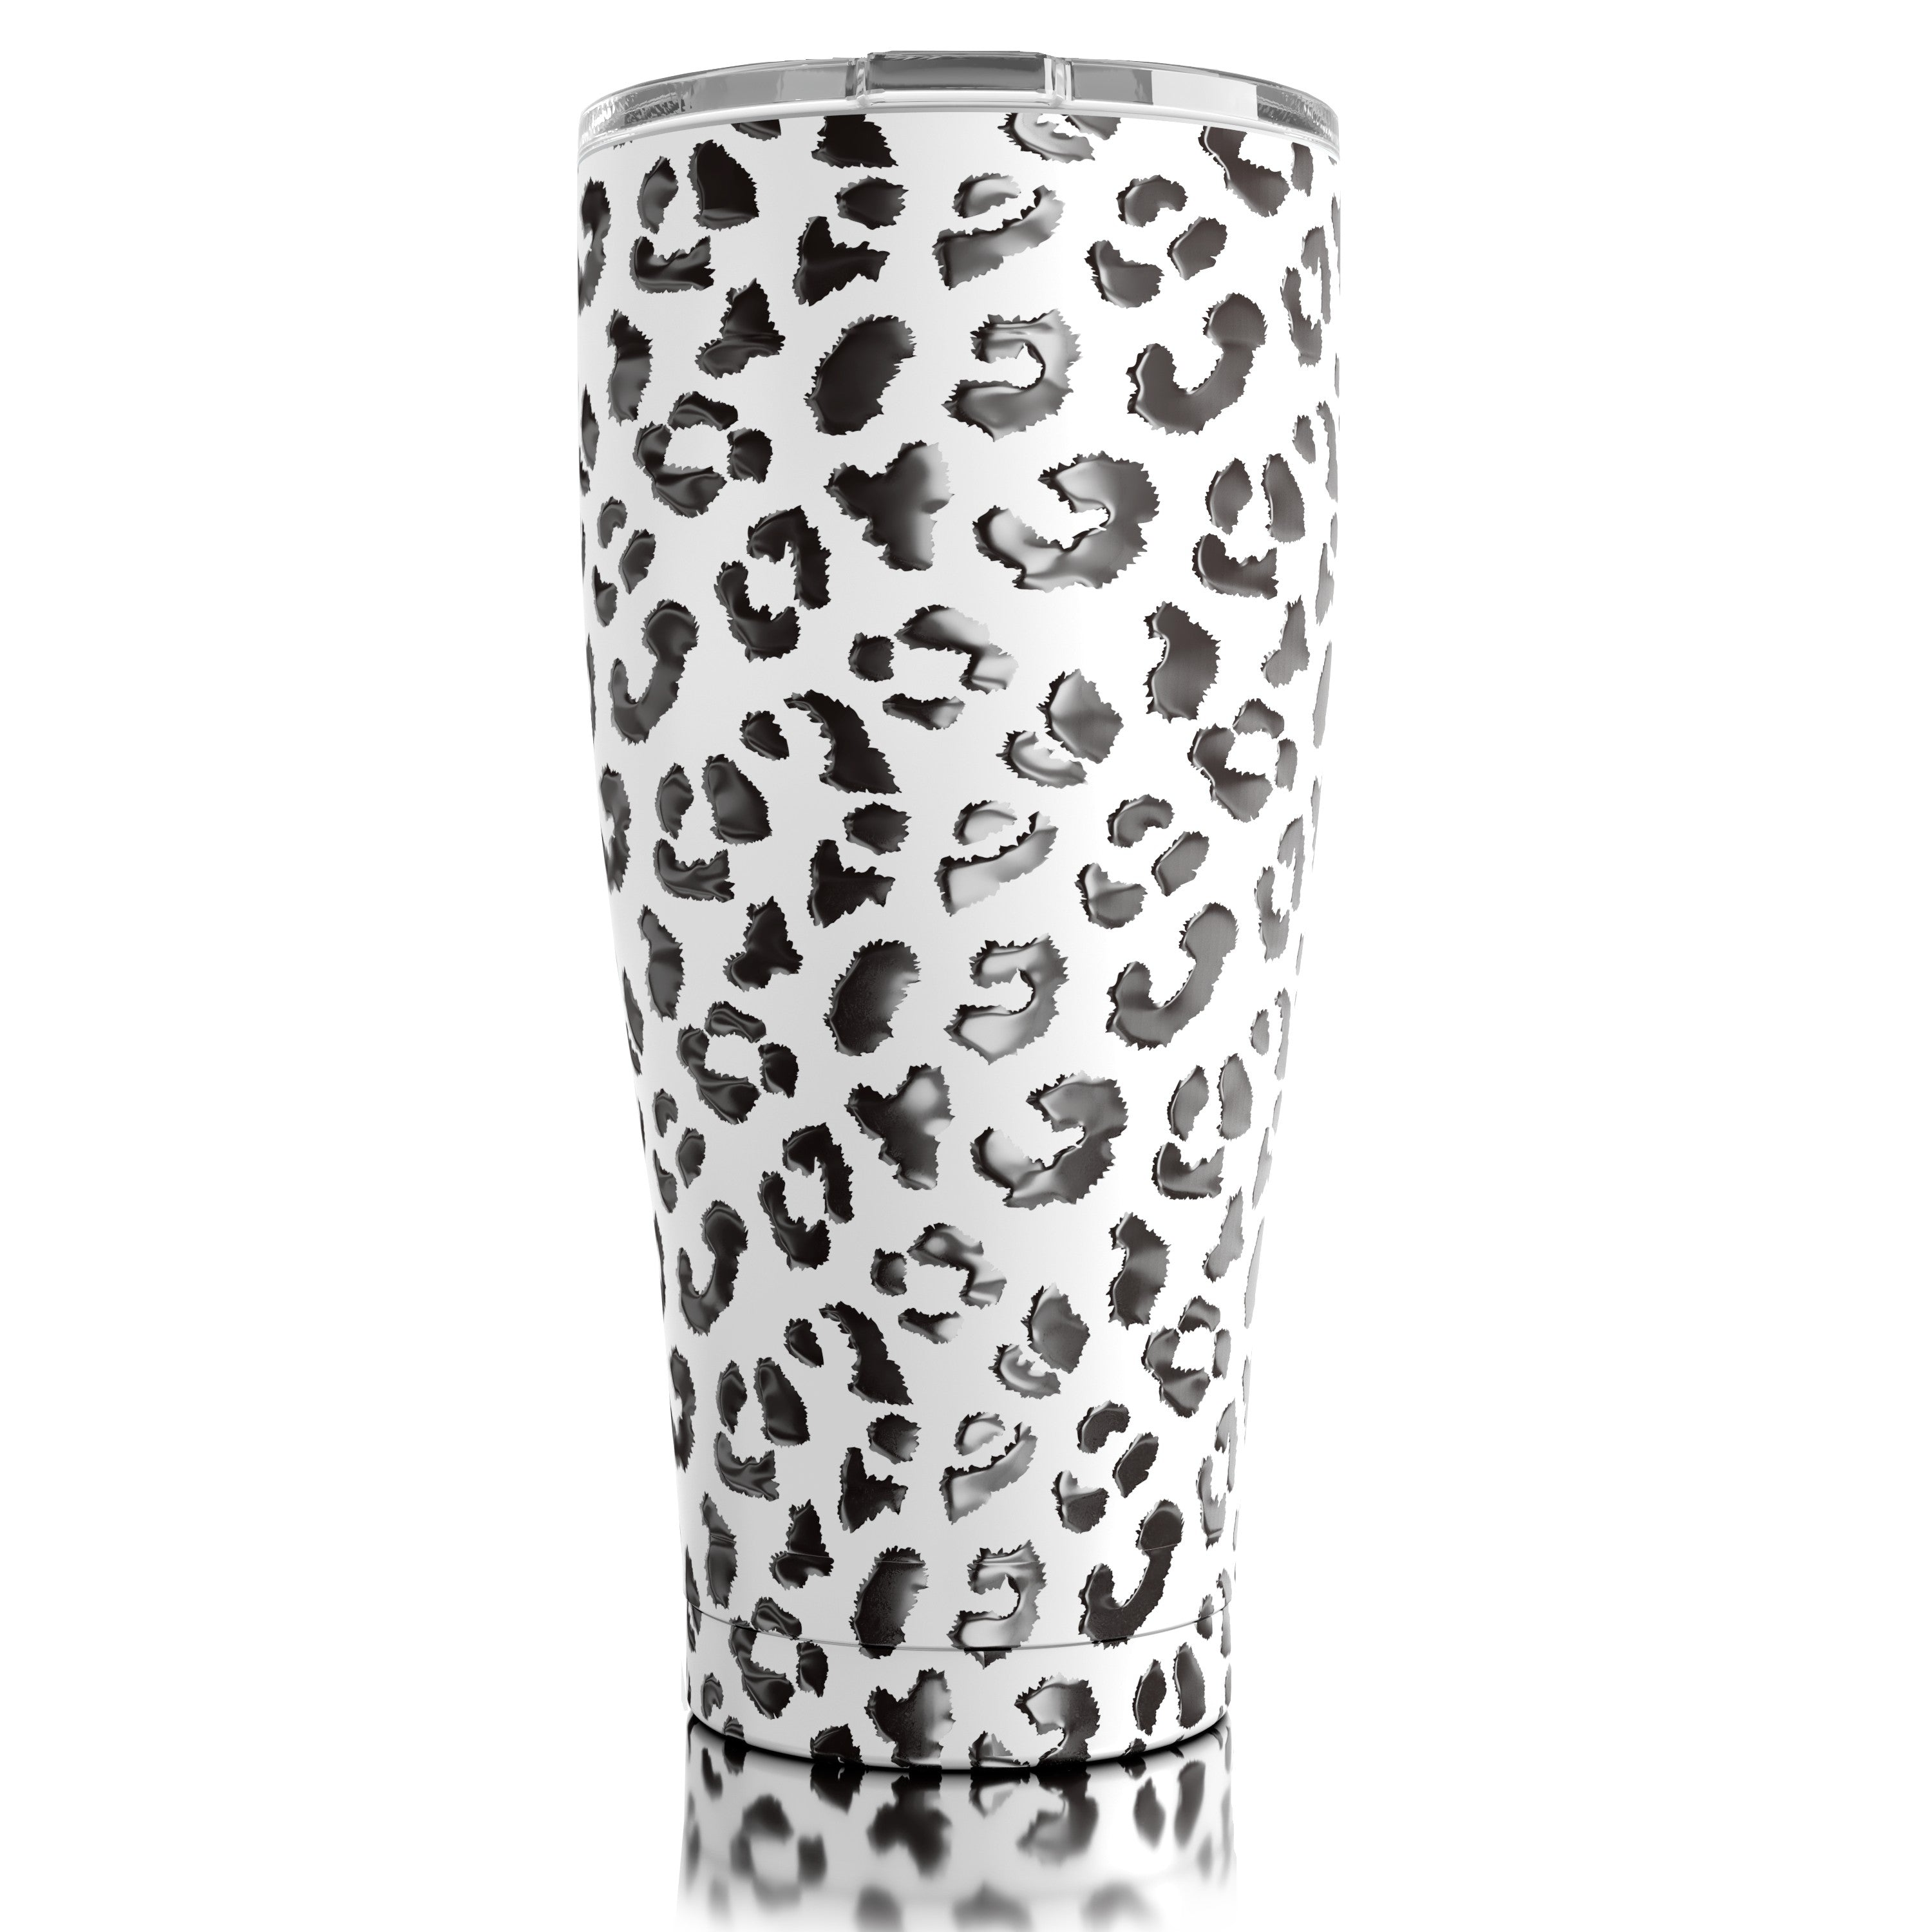 30oz Stainless Steel Leopard Tumbler